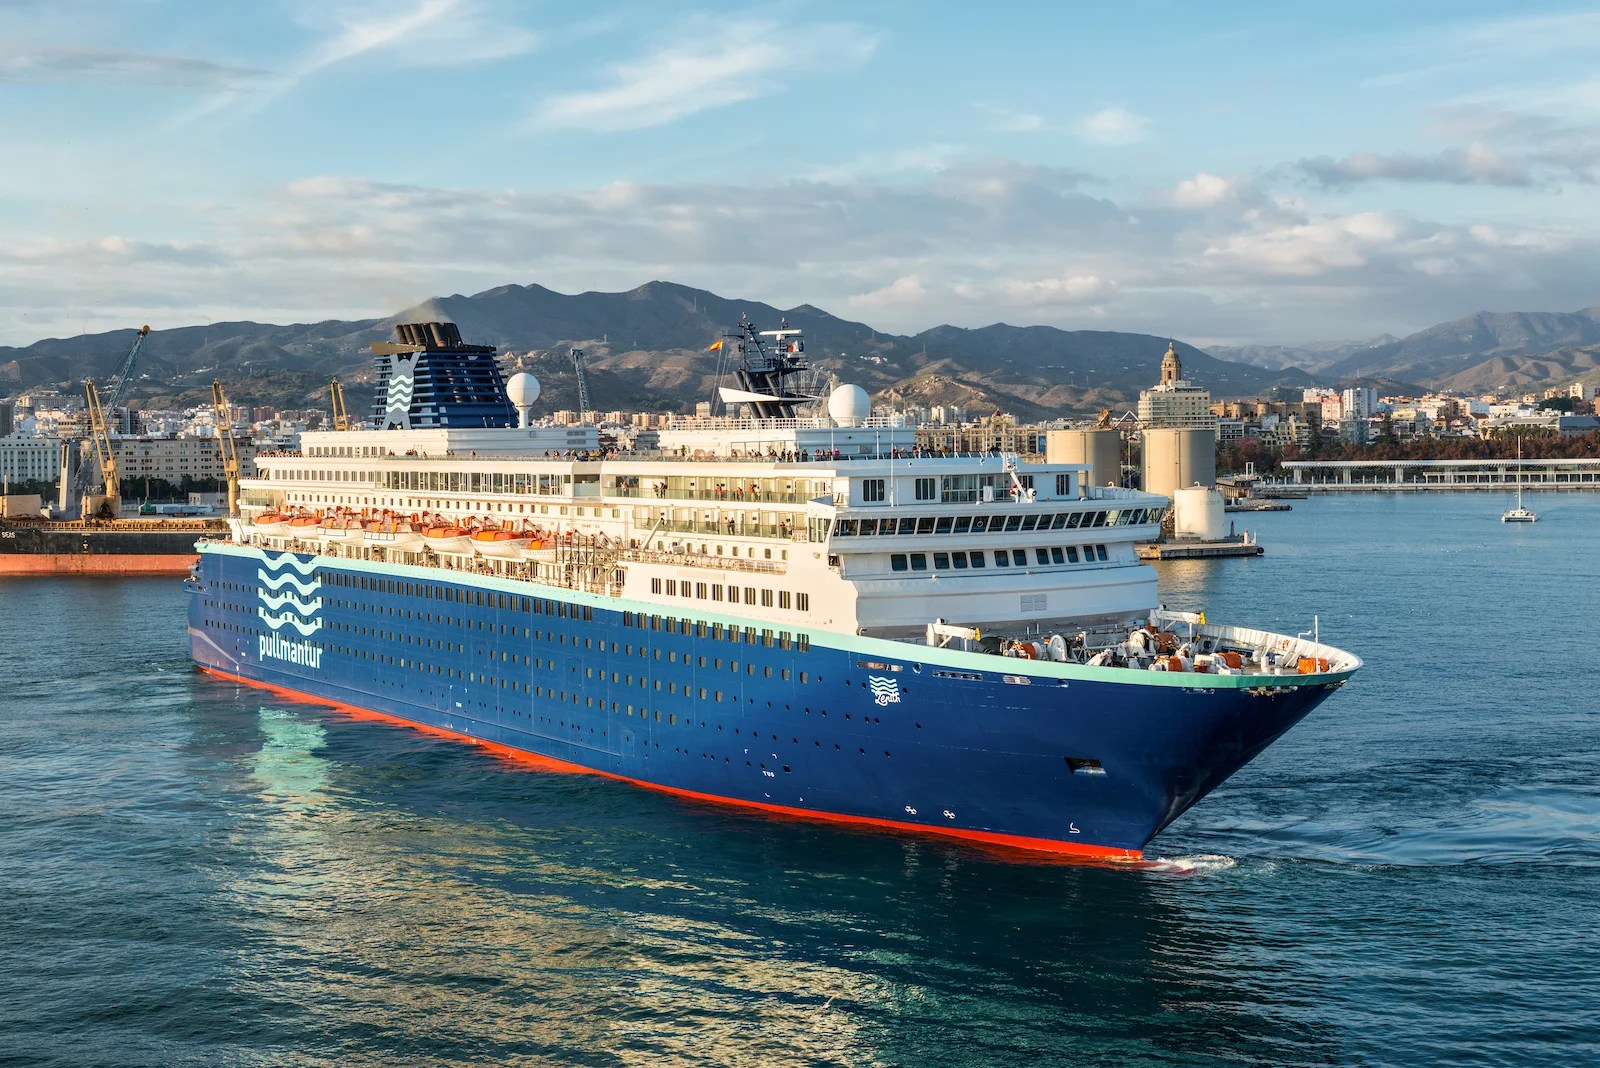 The coronavirus pandemic has claimed its first cruise line